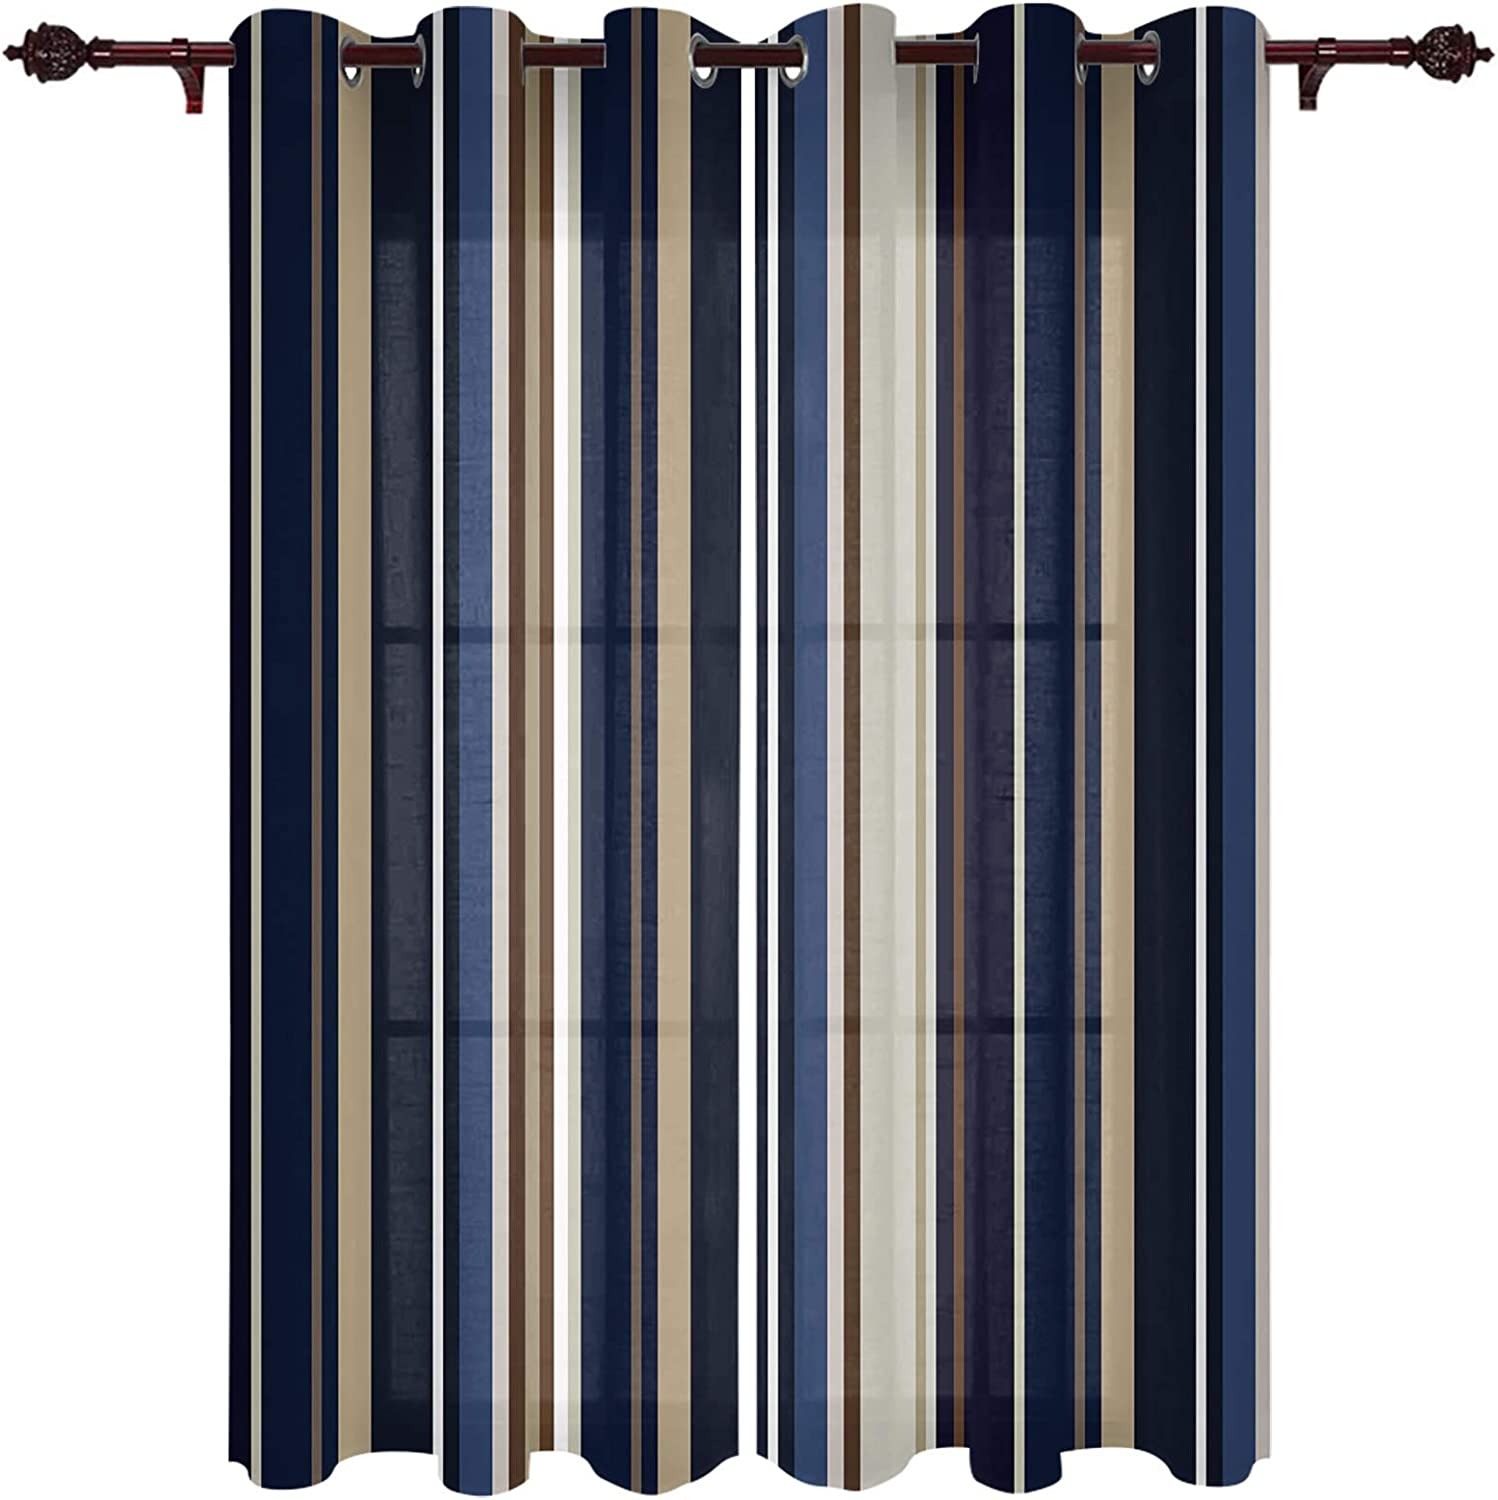 OUR WINGS Set of 2 Panels Window Bedroom Curtains for Max 70% OFF shipfree Living Roo